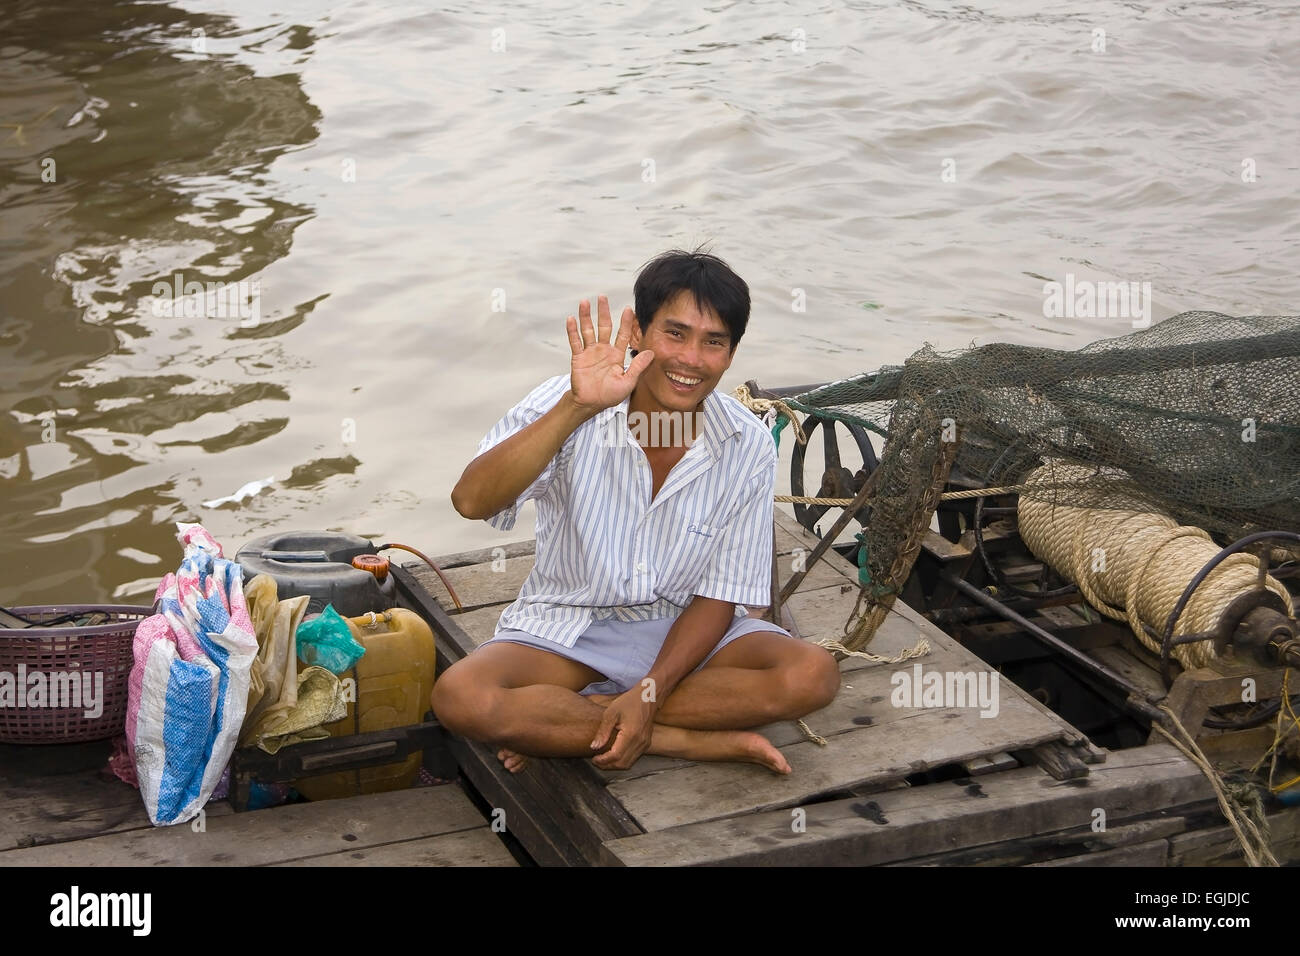 Boat sells goods on the Mekong River in Cai Be, Vietnam, Southeast Asia - Stock Image